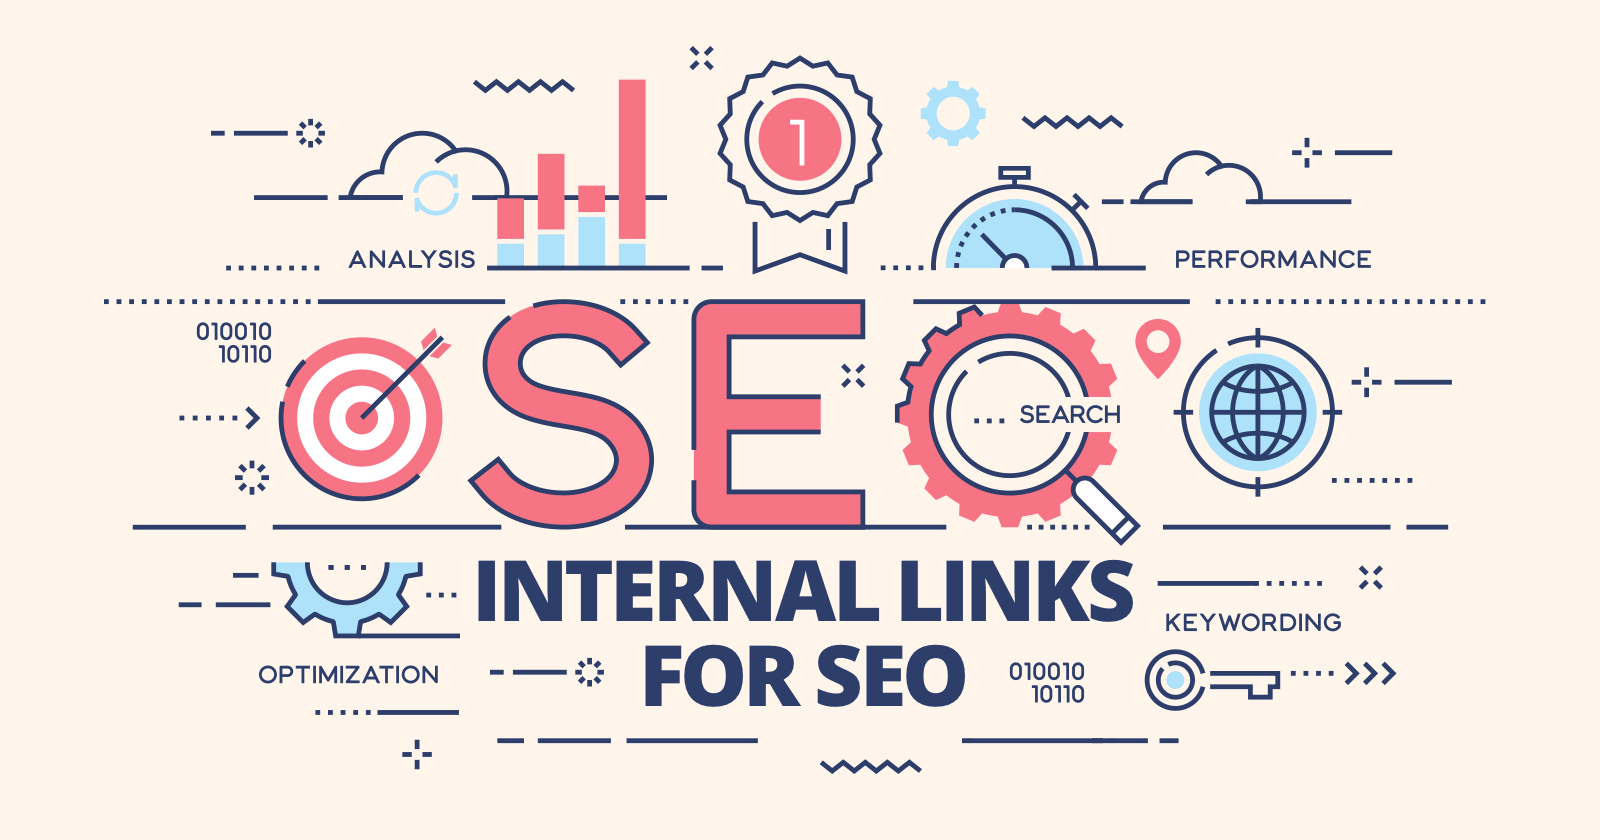 https://cdn.searchenginejournal.com/wp-content/uploads/2019/04/internal-links-lead-image.png